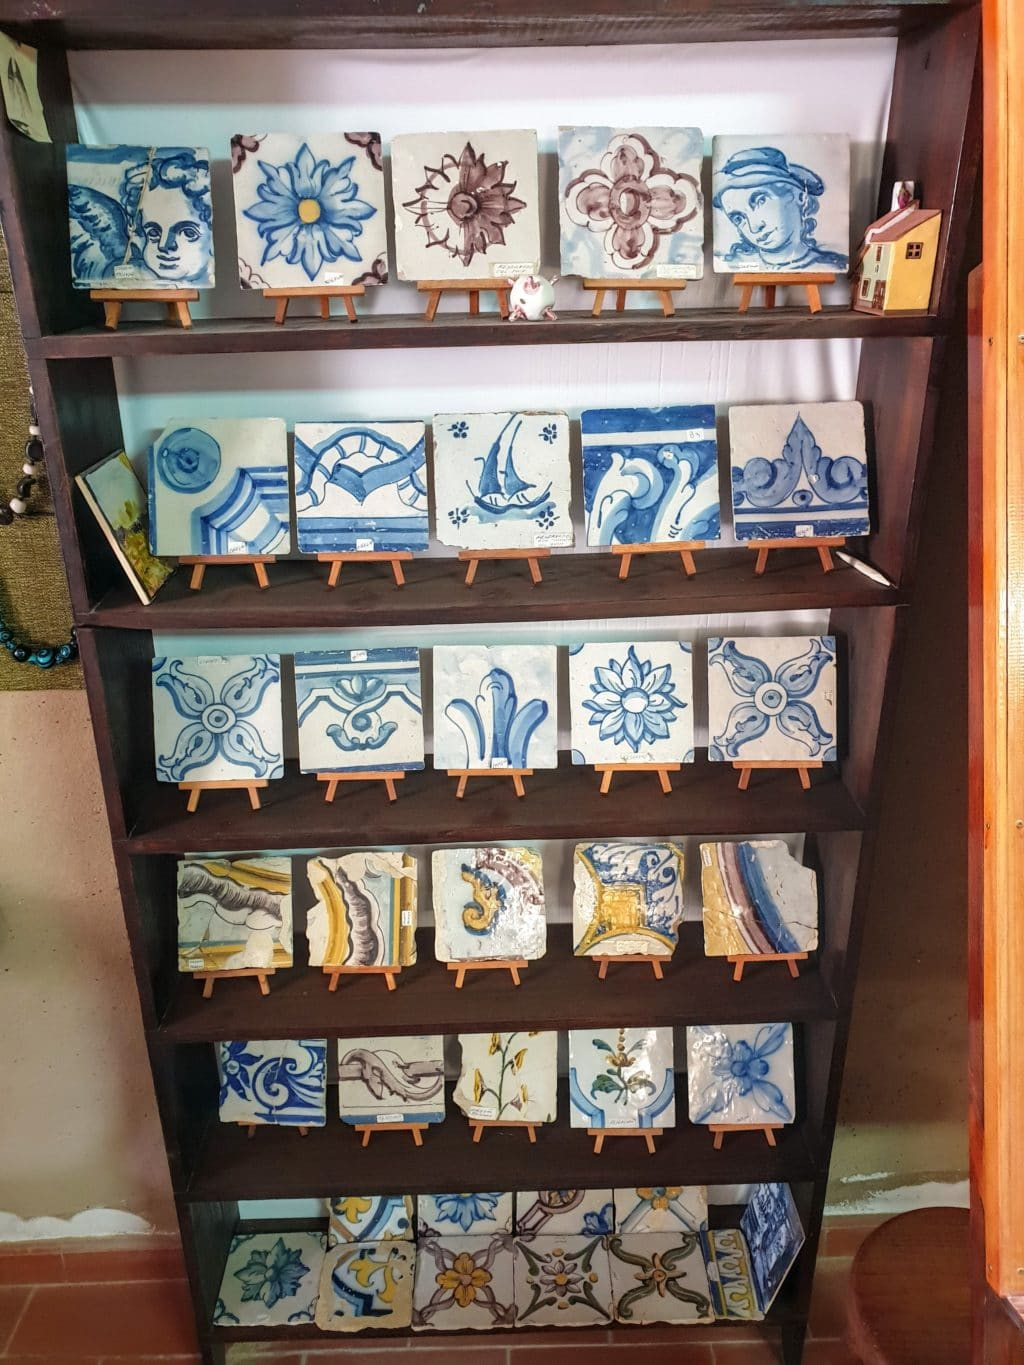 Historic tiles in Portugal